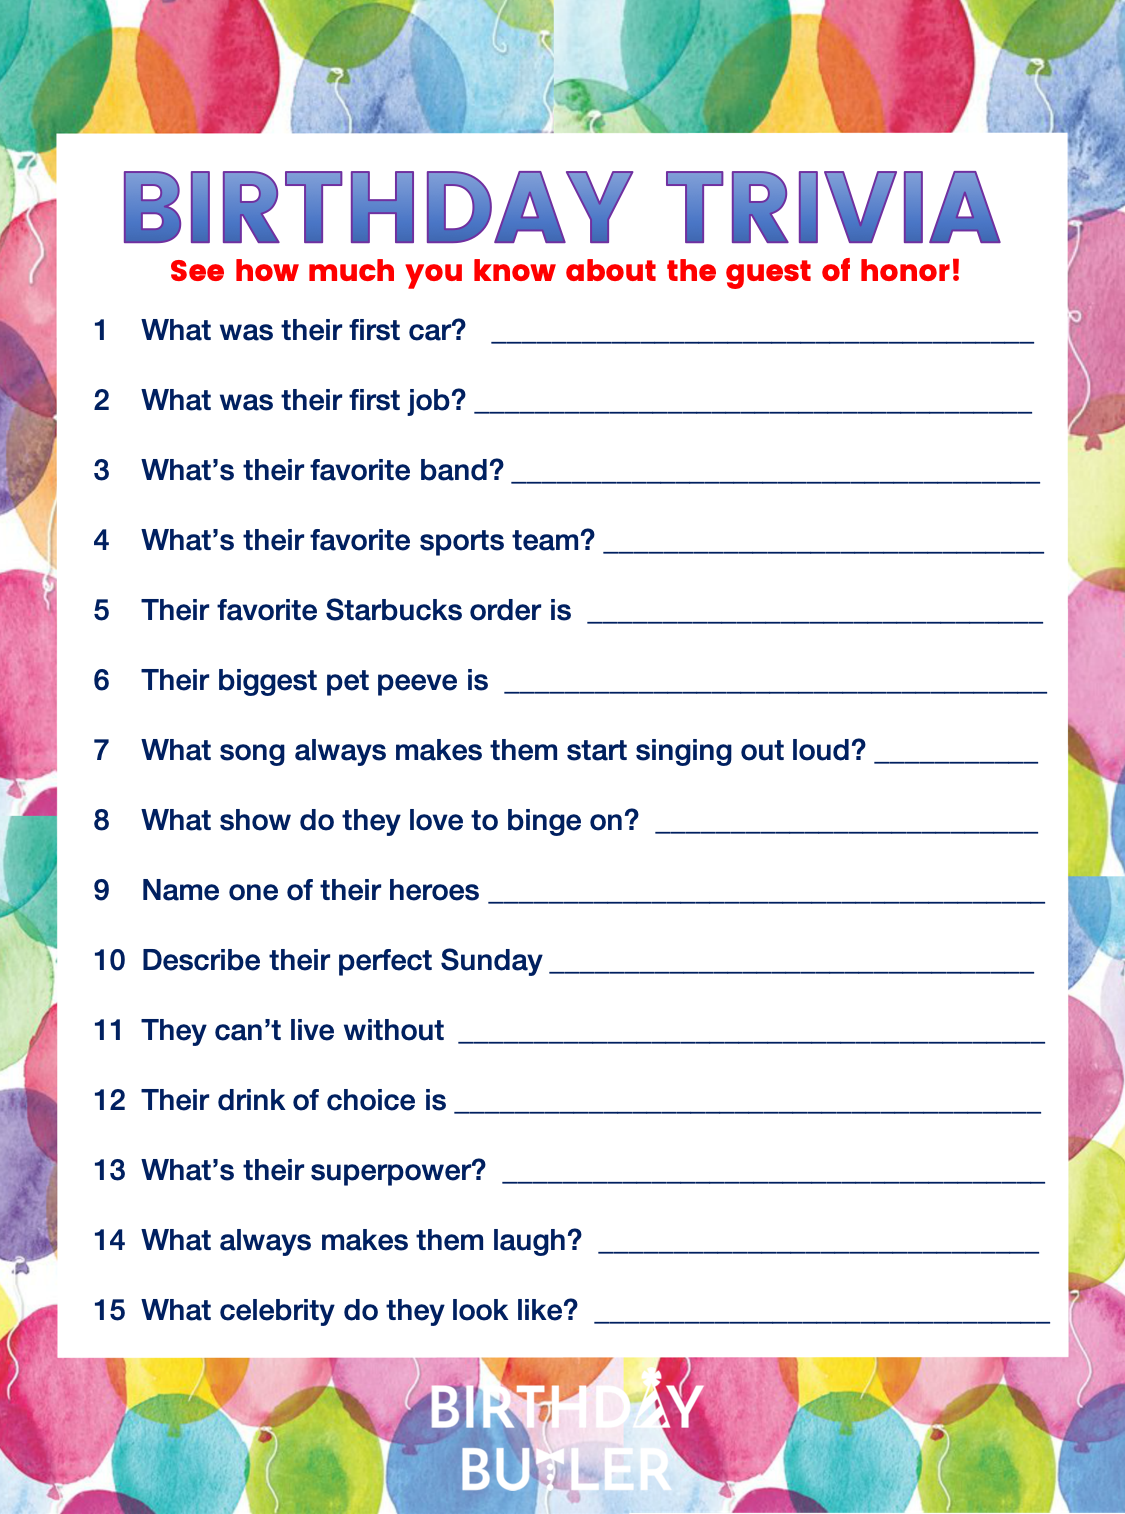 Add Oomph To Your Party With Birthday Trivia With Images